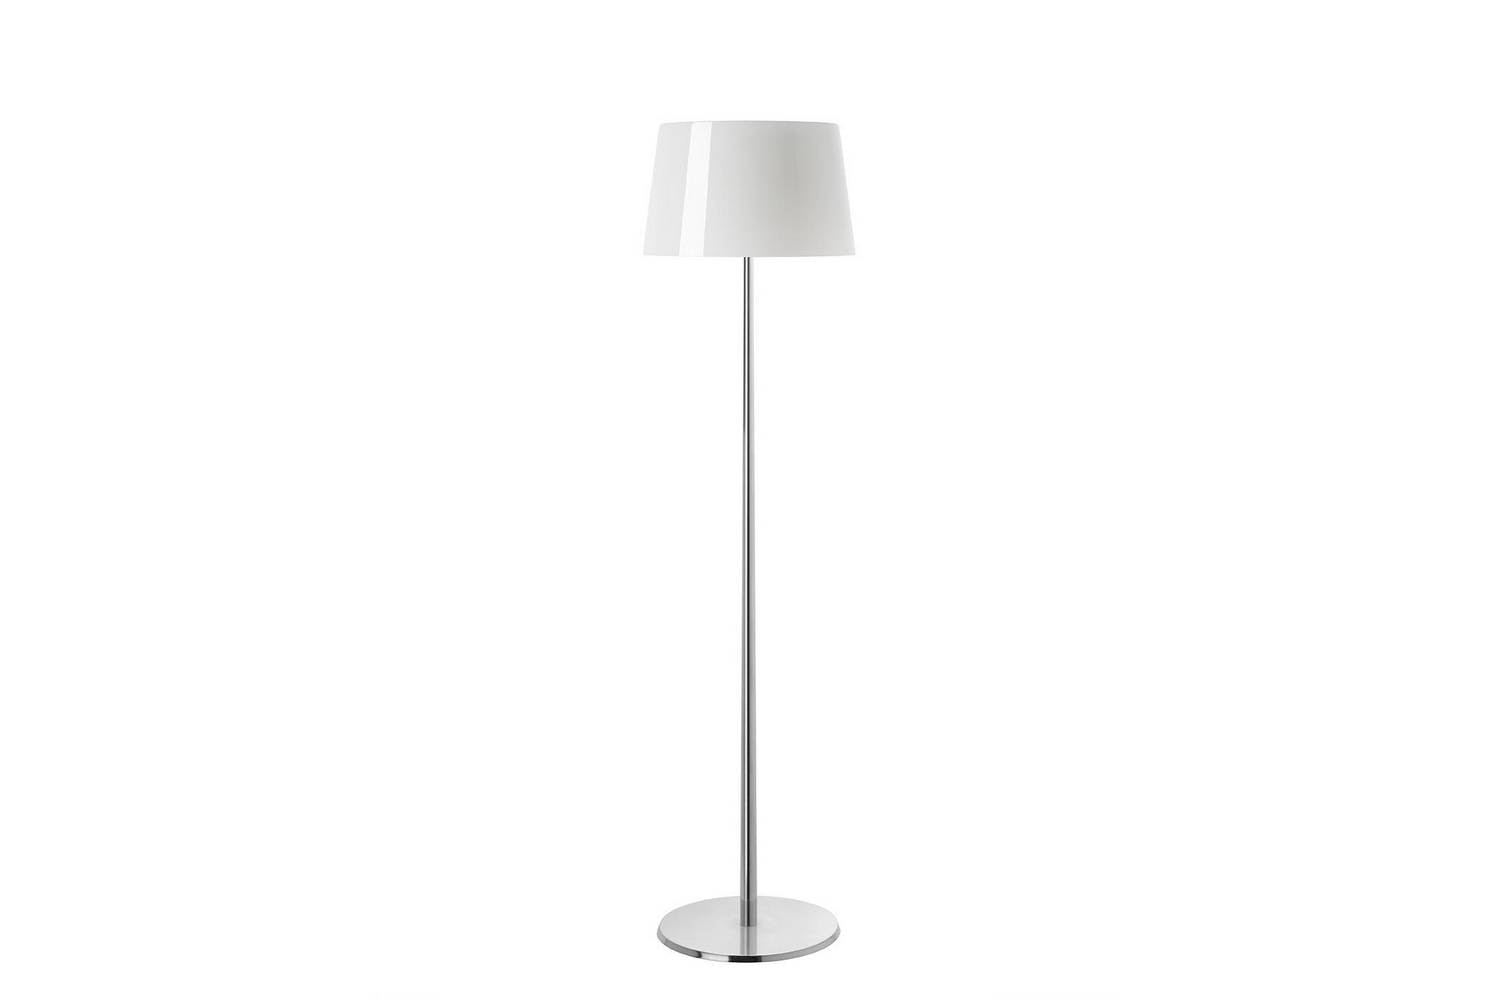 Lumiere XXL Floor Lamp by Rodolfo Dordoni for Foscarini